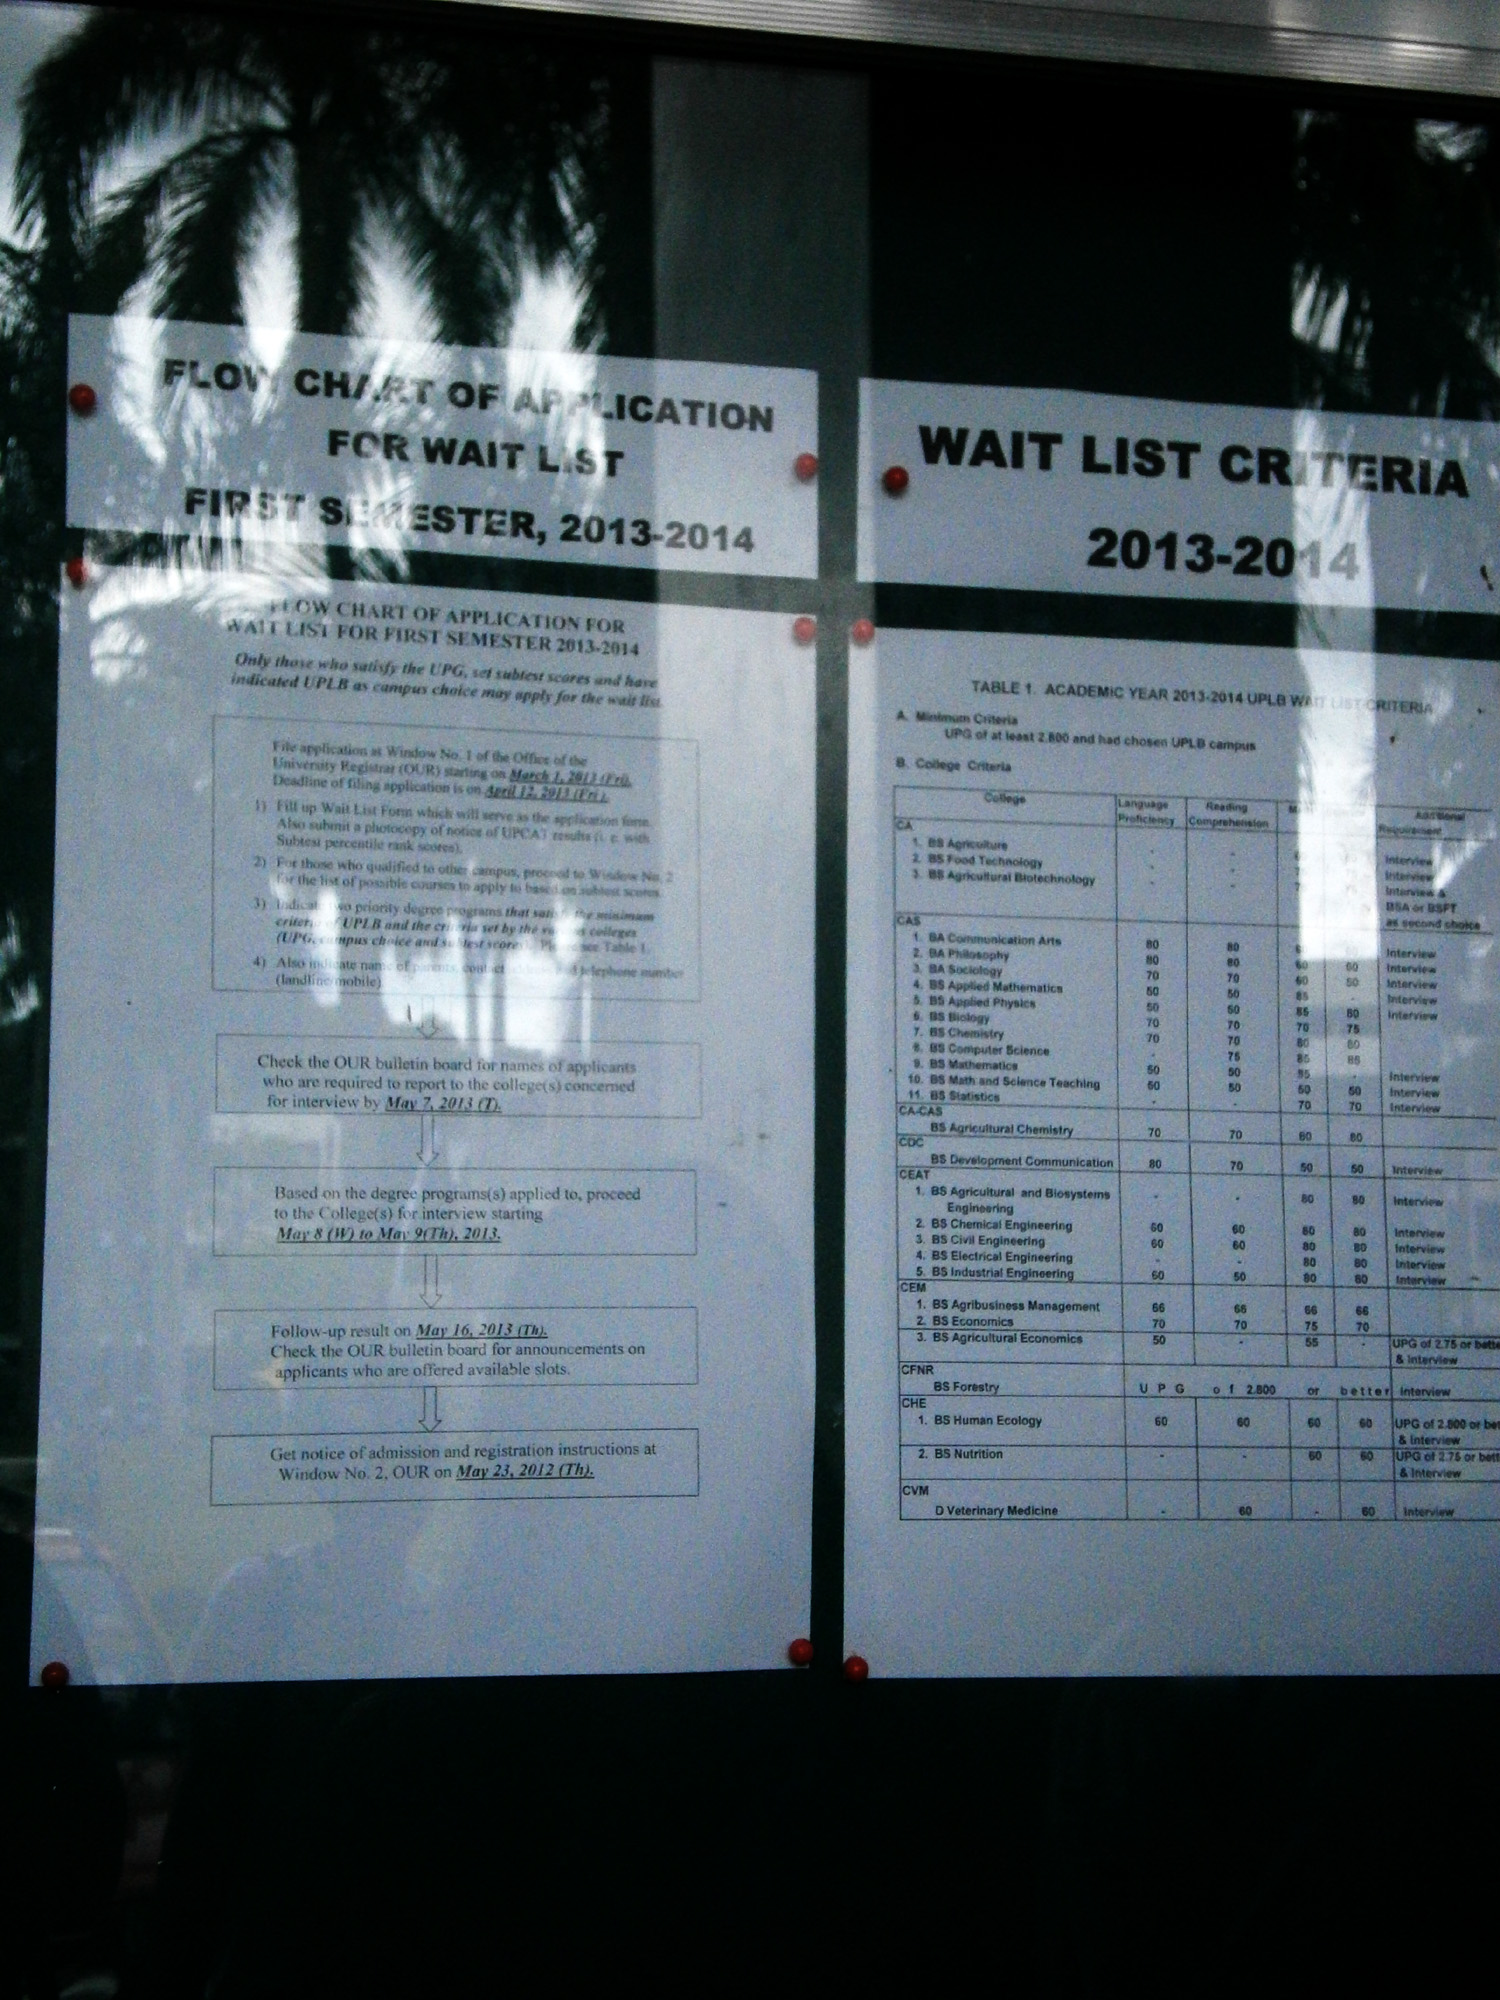 Flow chart of application for wait list and wait list criteria for UPLB for First Semester 2013-2014